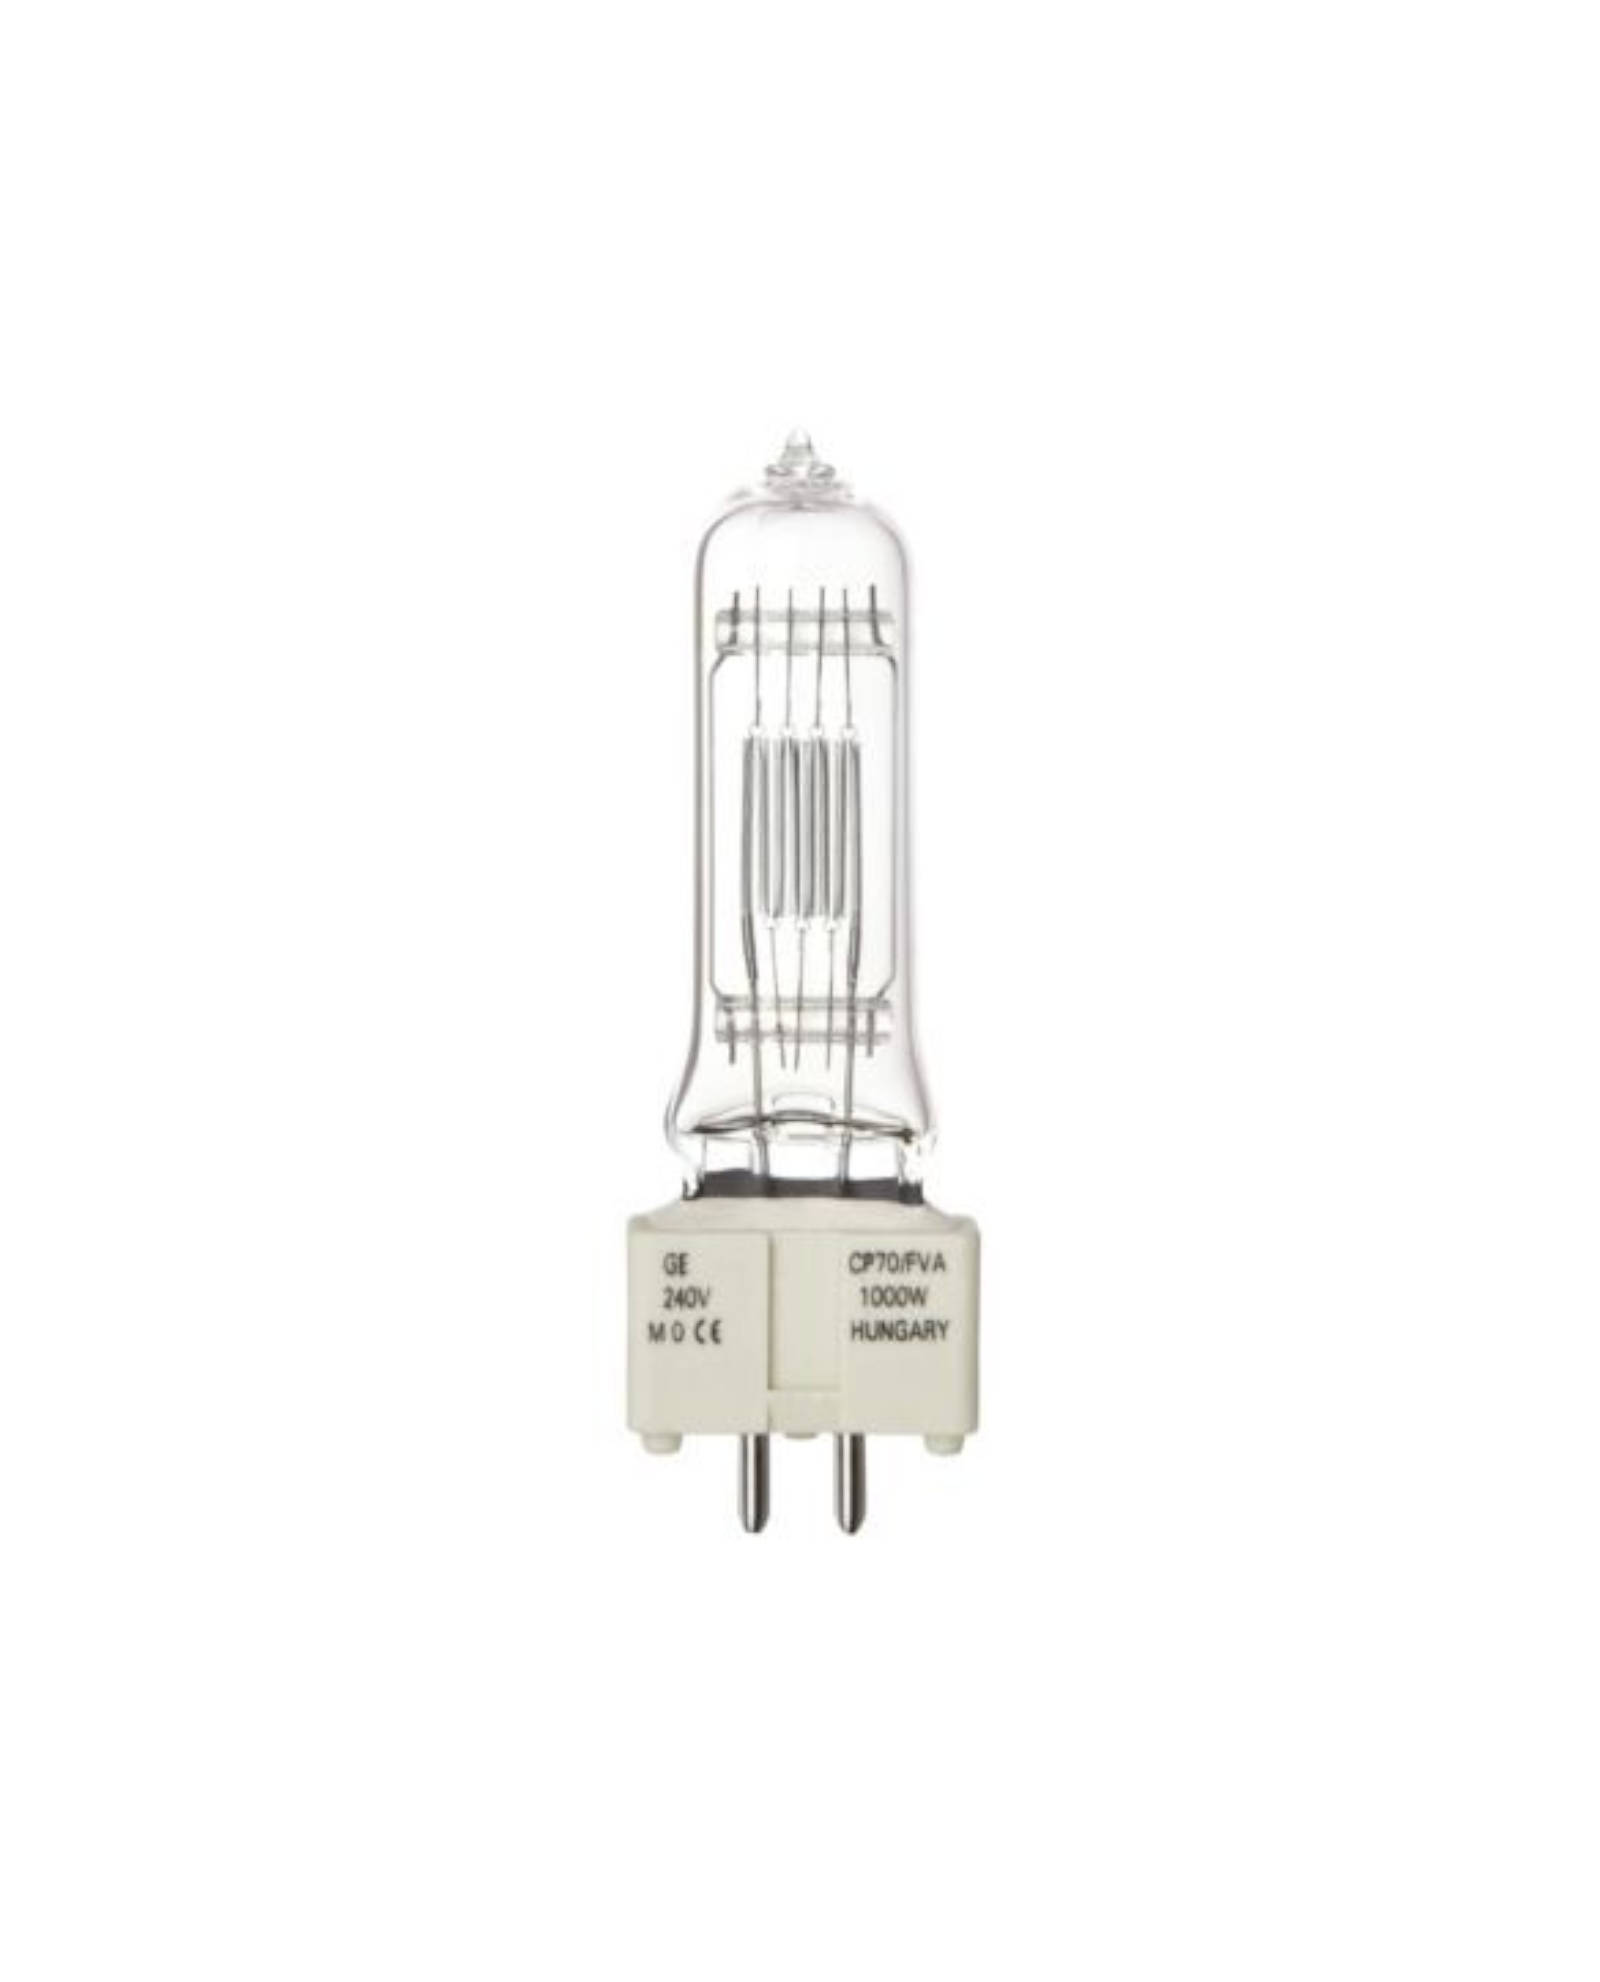 Single Ended Halogen Cp70 Fva 240v